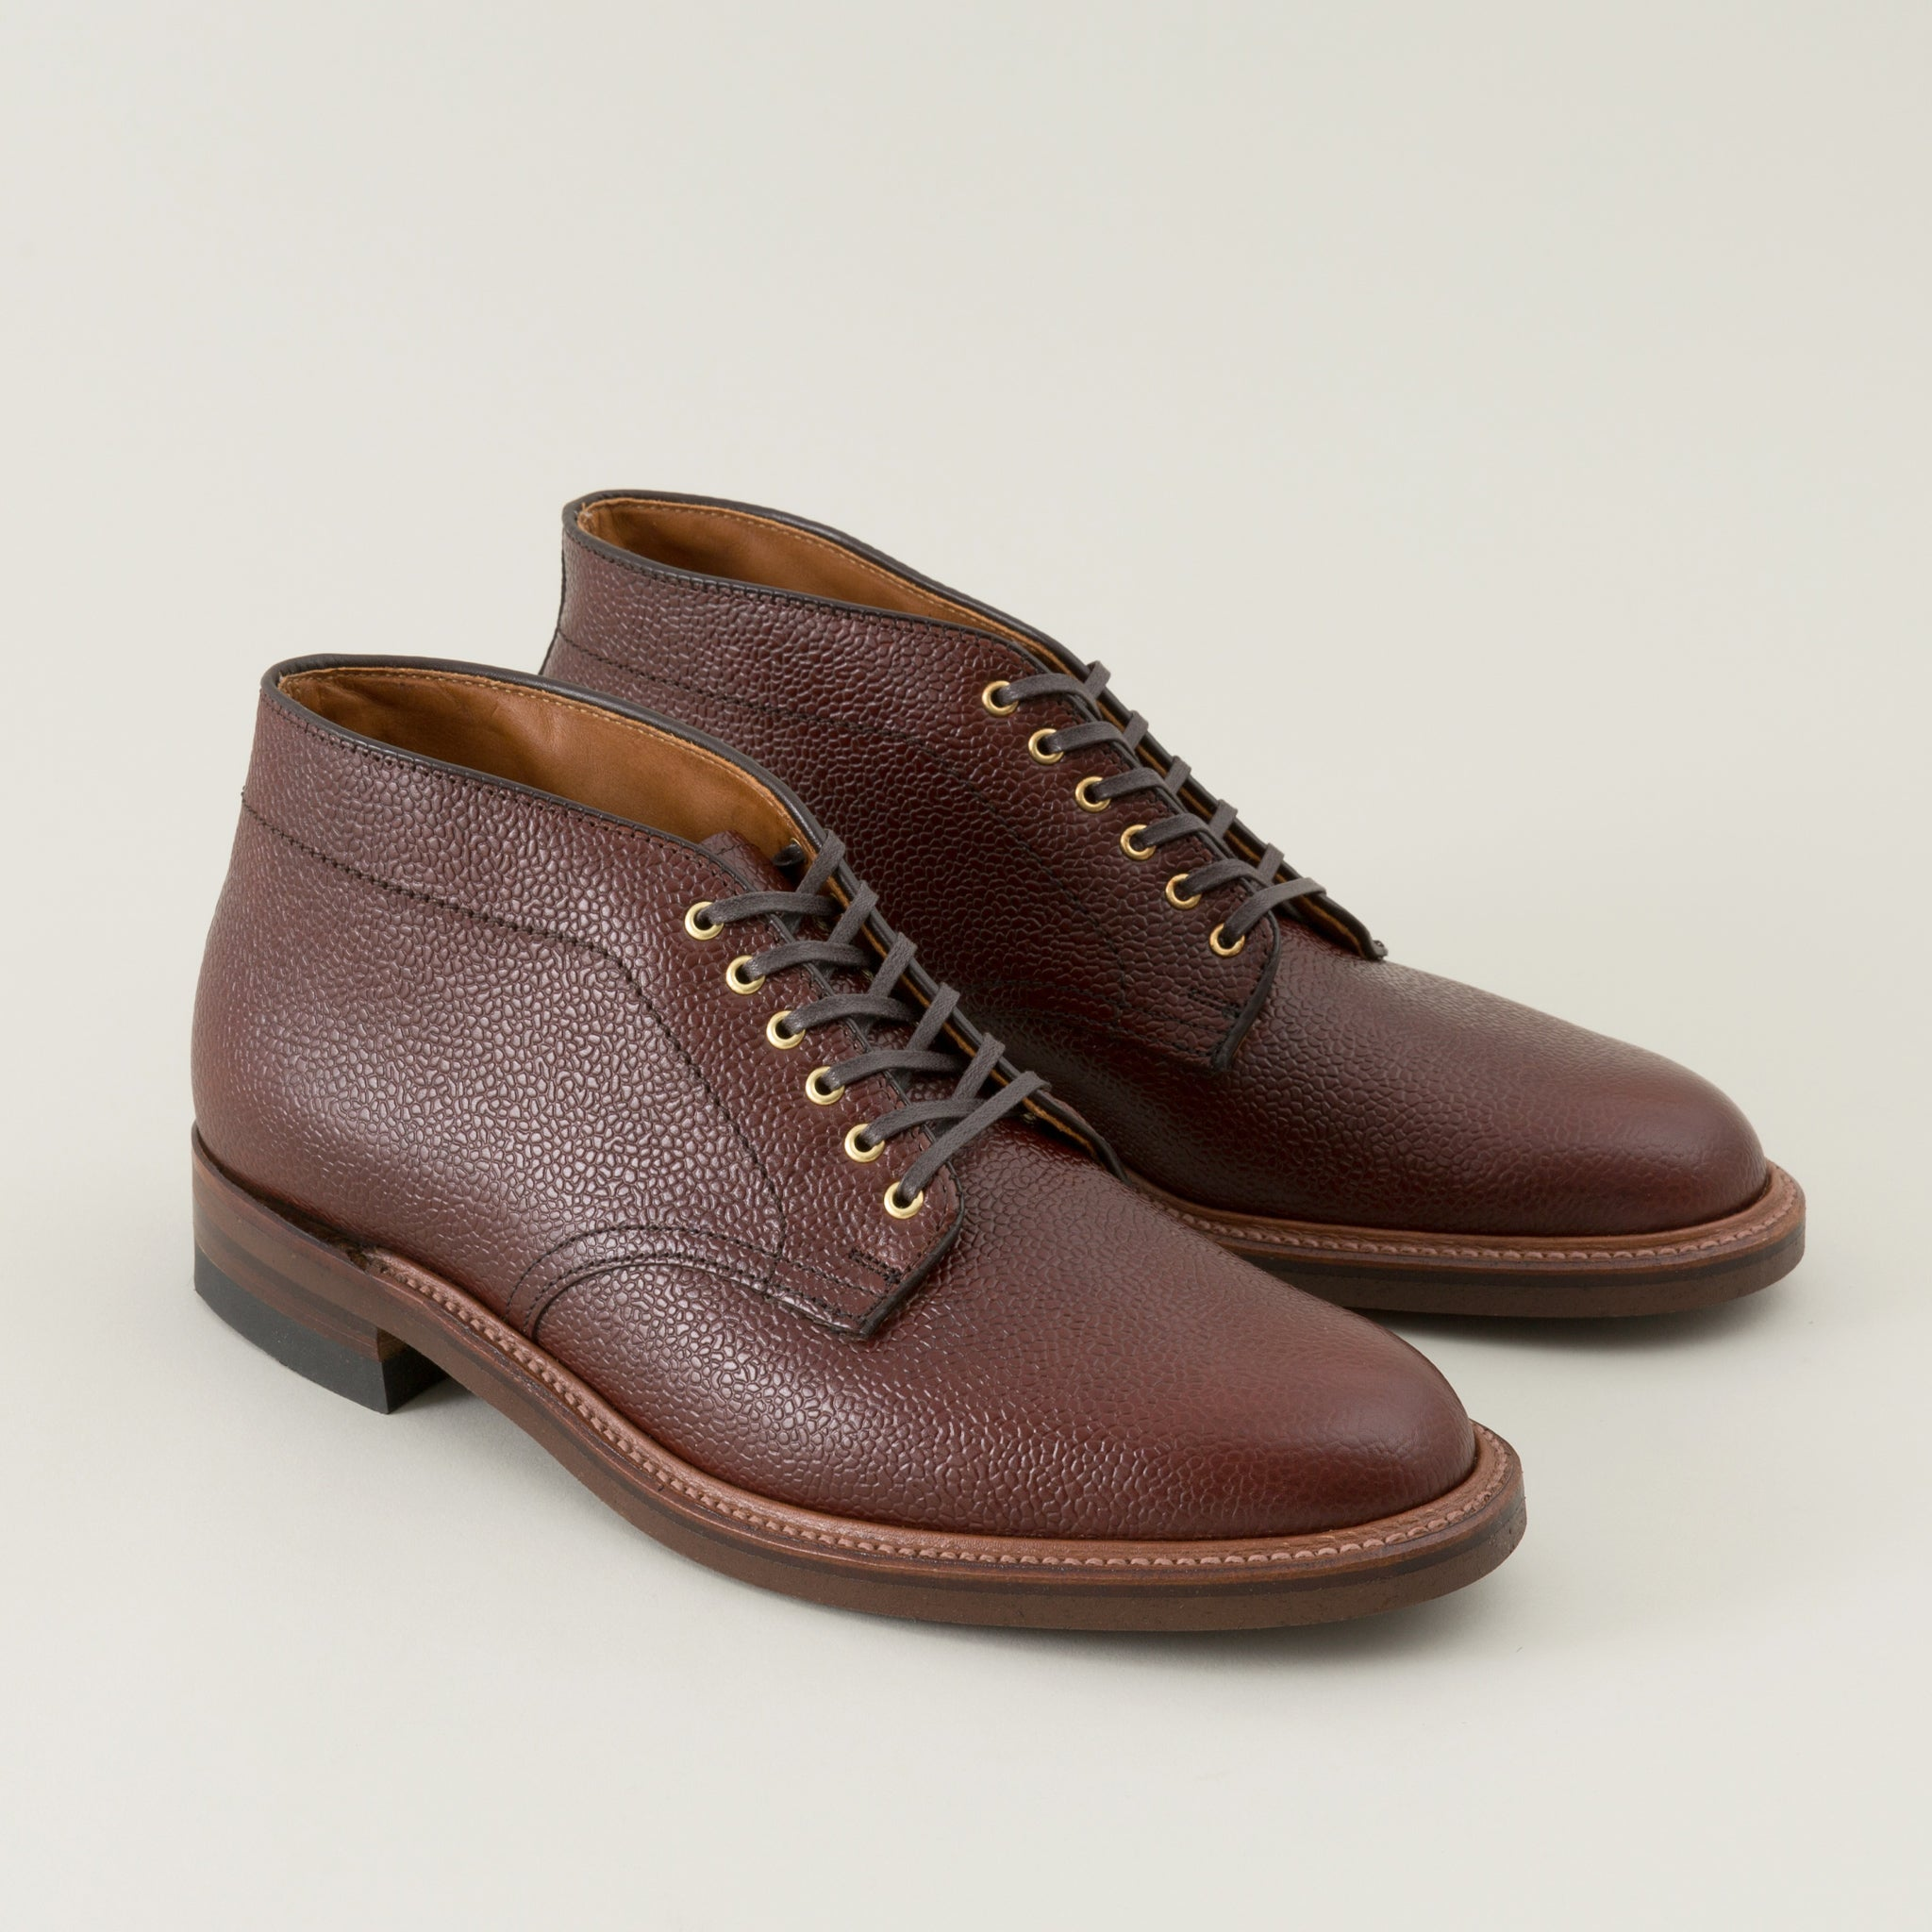 Six Eyelet Chukka Boot Brown Scotch Grain The Stronghold